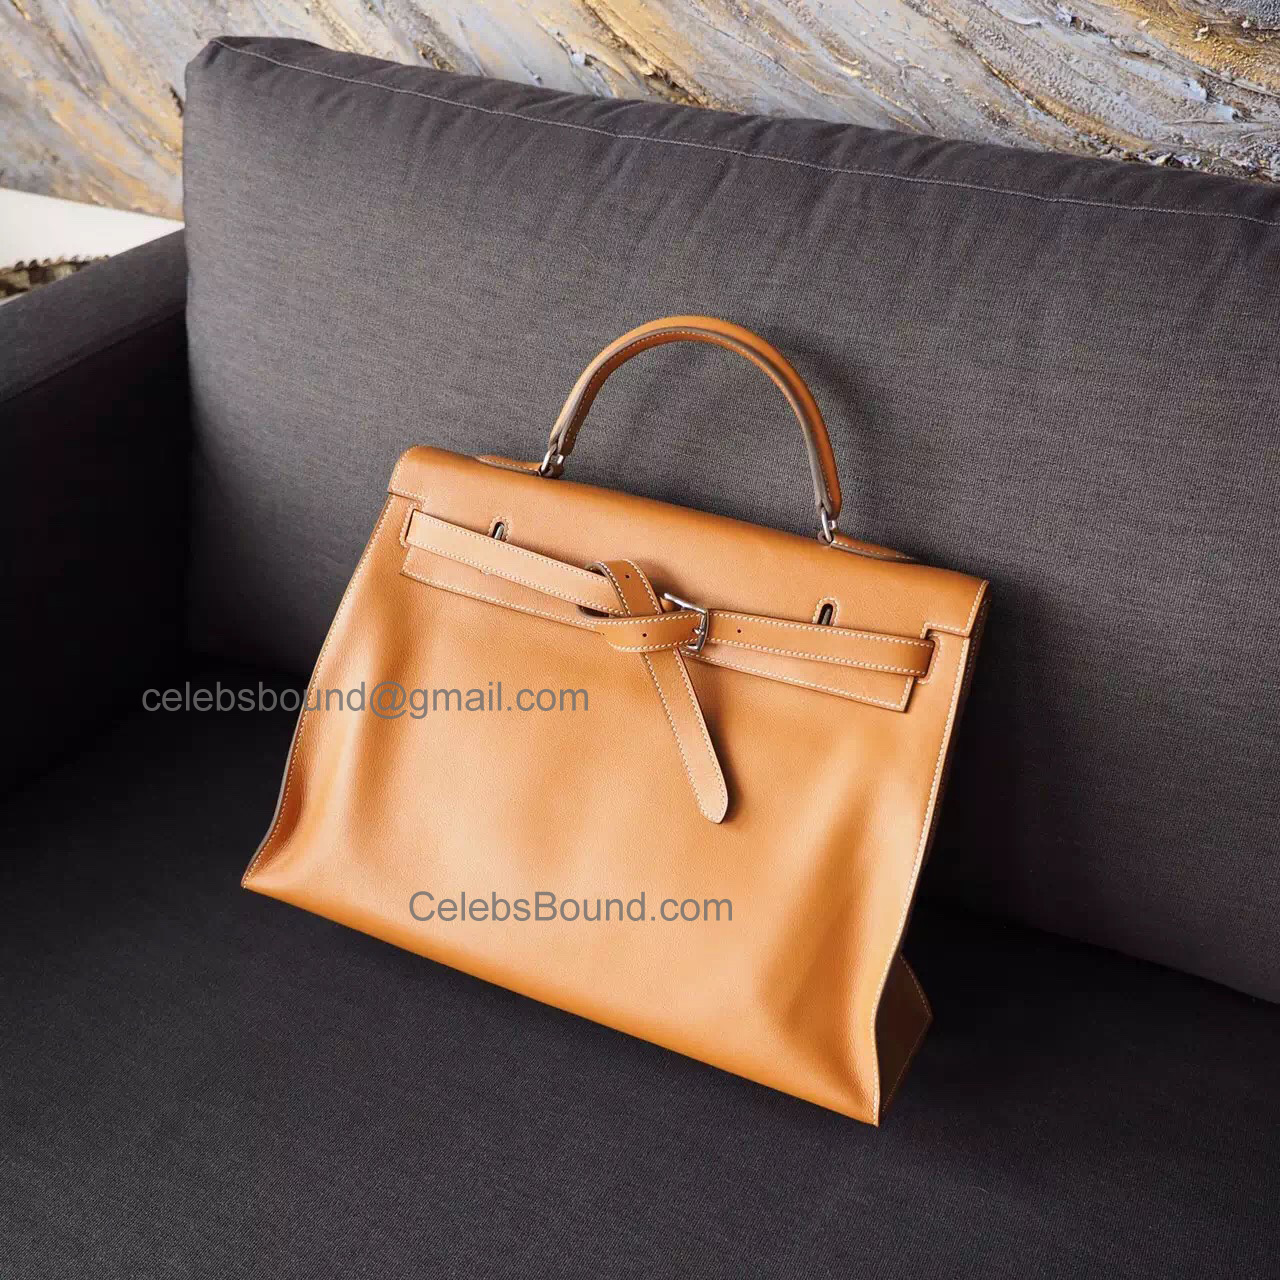 Hand Stitched Hermes Kelly Flat 35 Copy Bag in ck35 Gold Swift Calfskin PHW